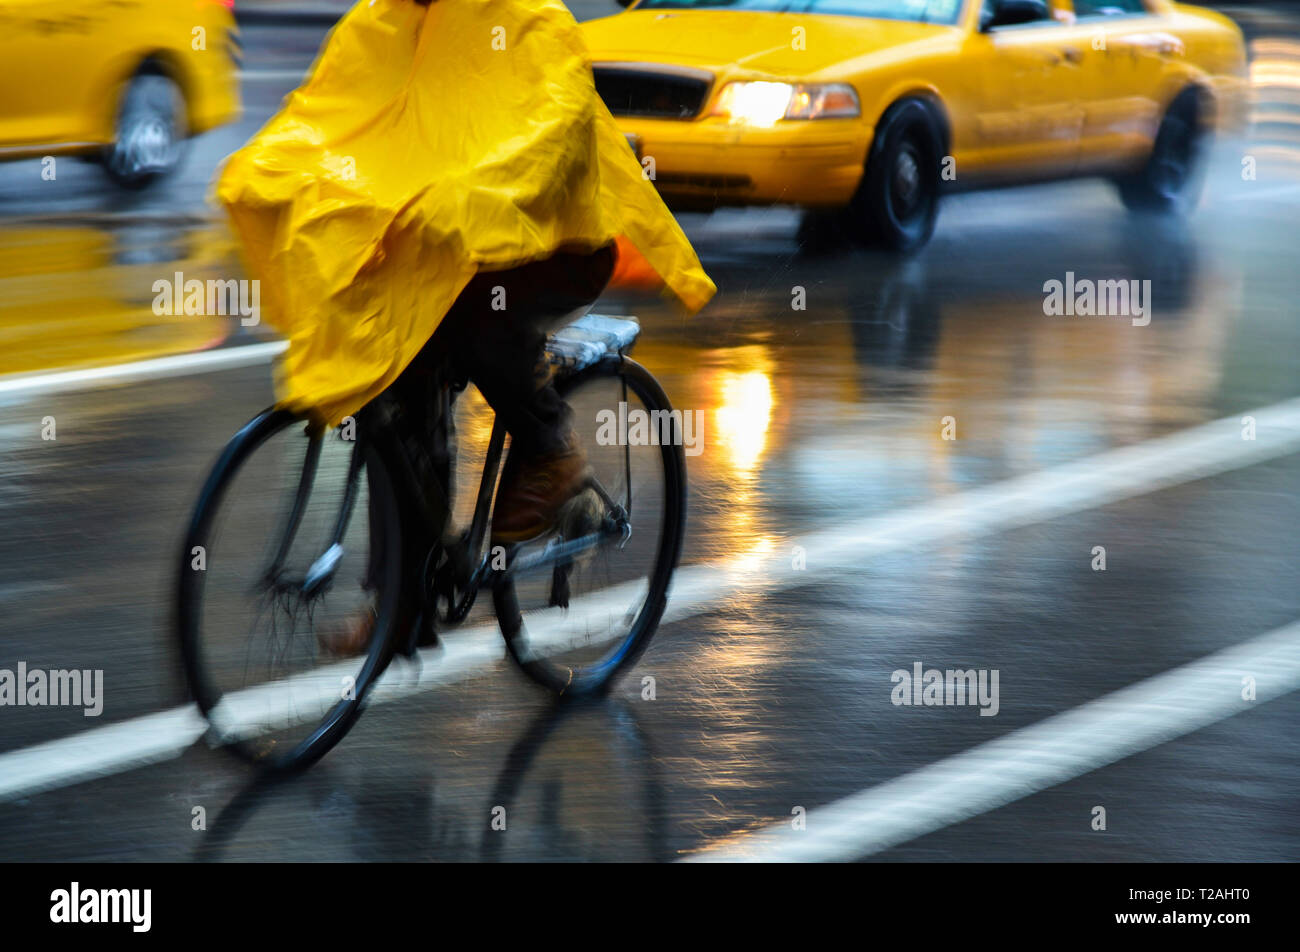 Cyclist in yellow poncho during rain in New York City, USA - Stock Image